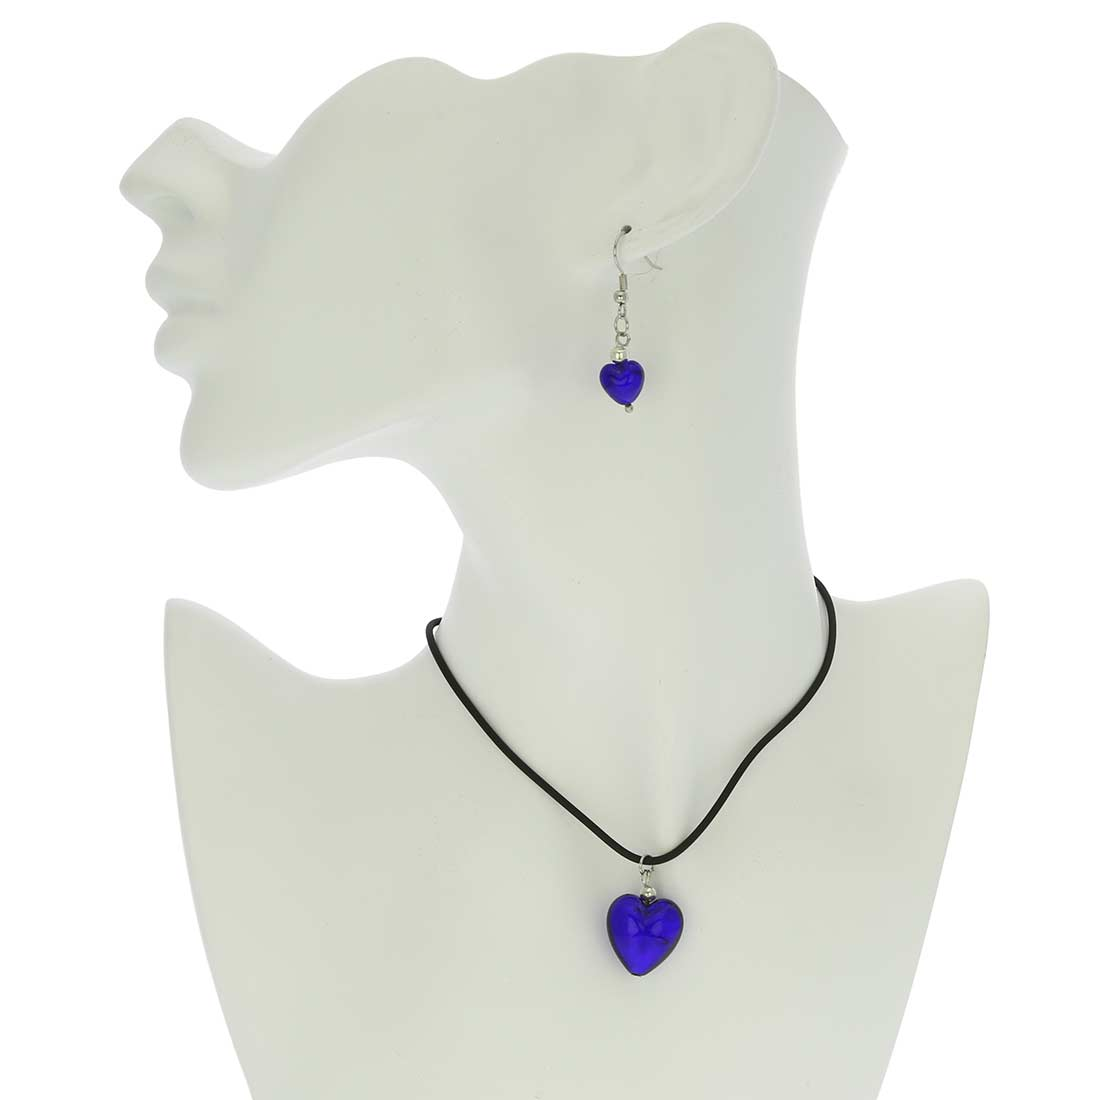 Venetian Reflections Puffed Heart Necklace and Earrings Set - Blue